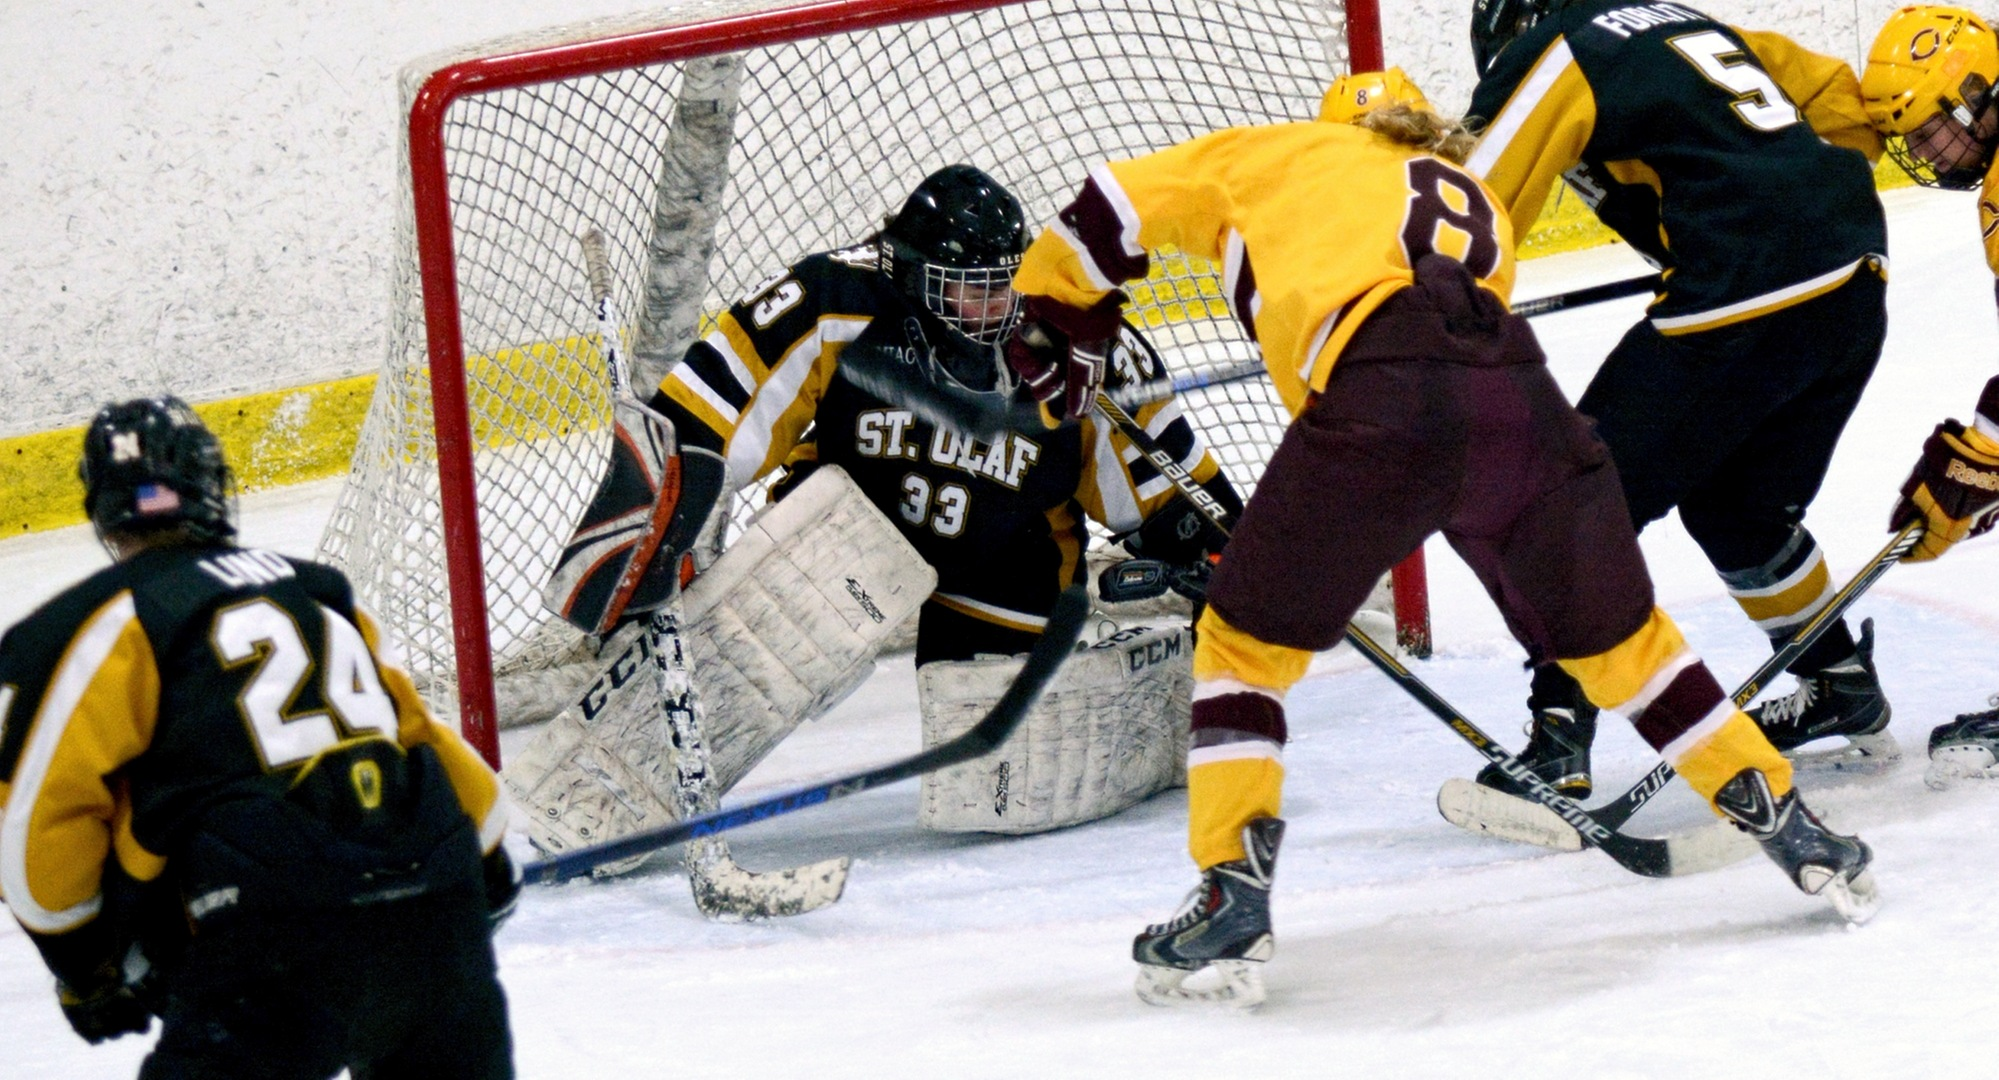 Senior Ellen Rethwisch had two goals in the Cobbers' 5-2 win at St. Olaf and now leads the MIAC in goals scored in league games.